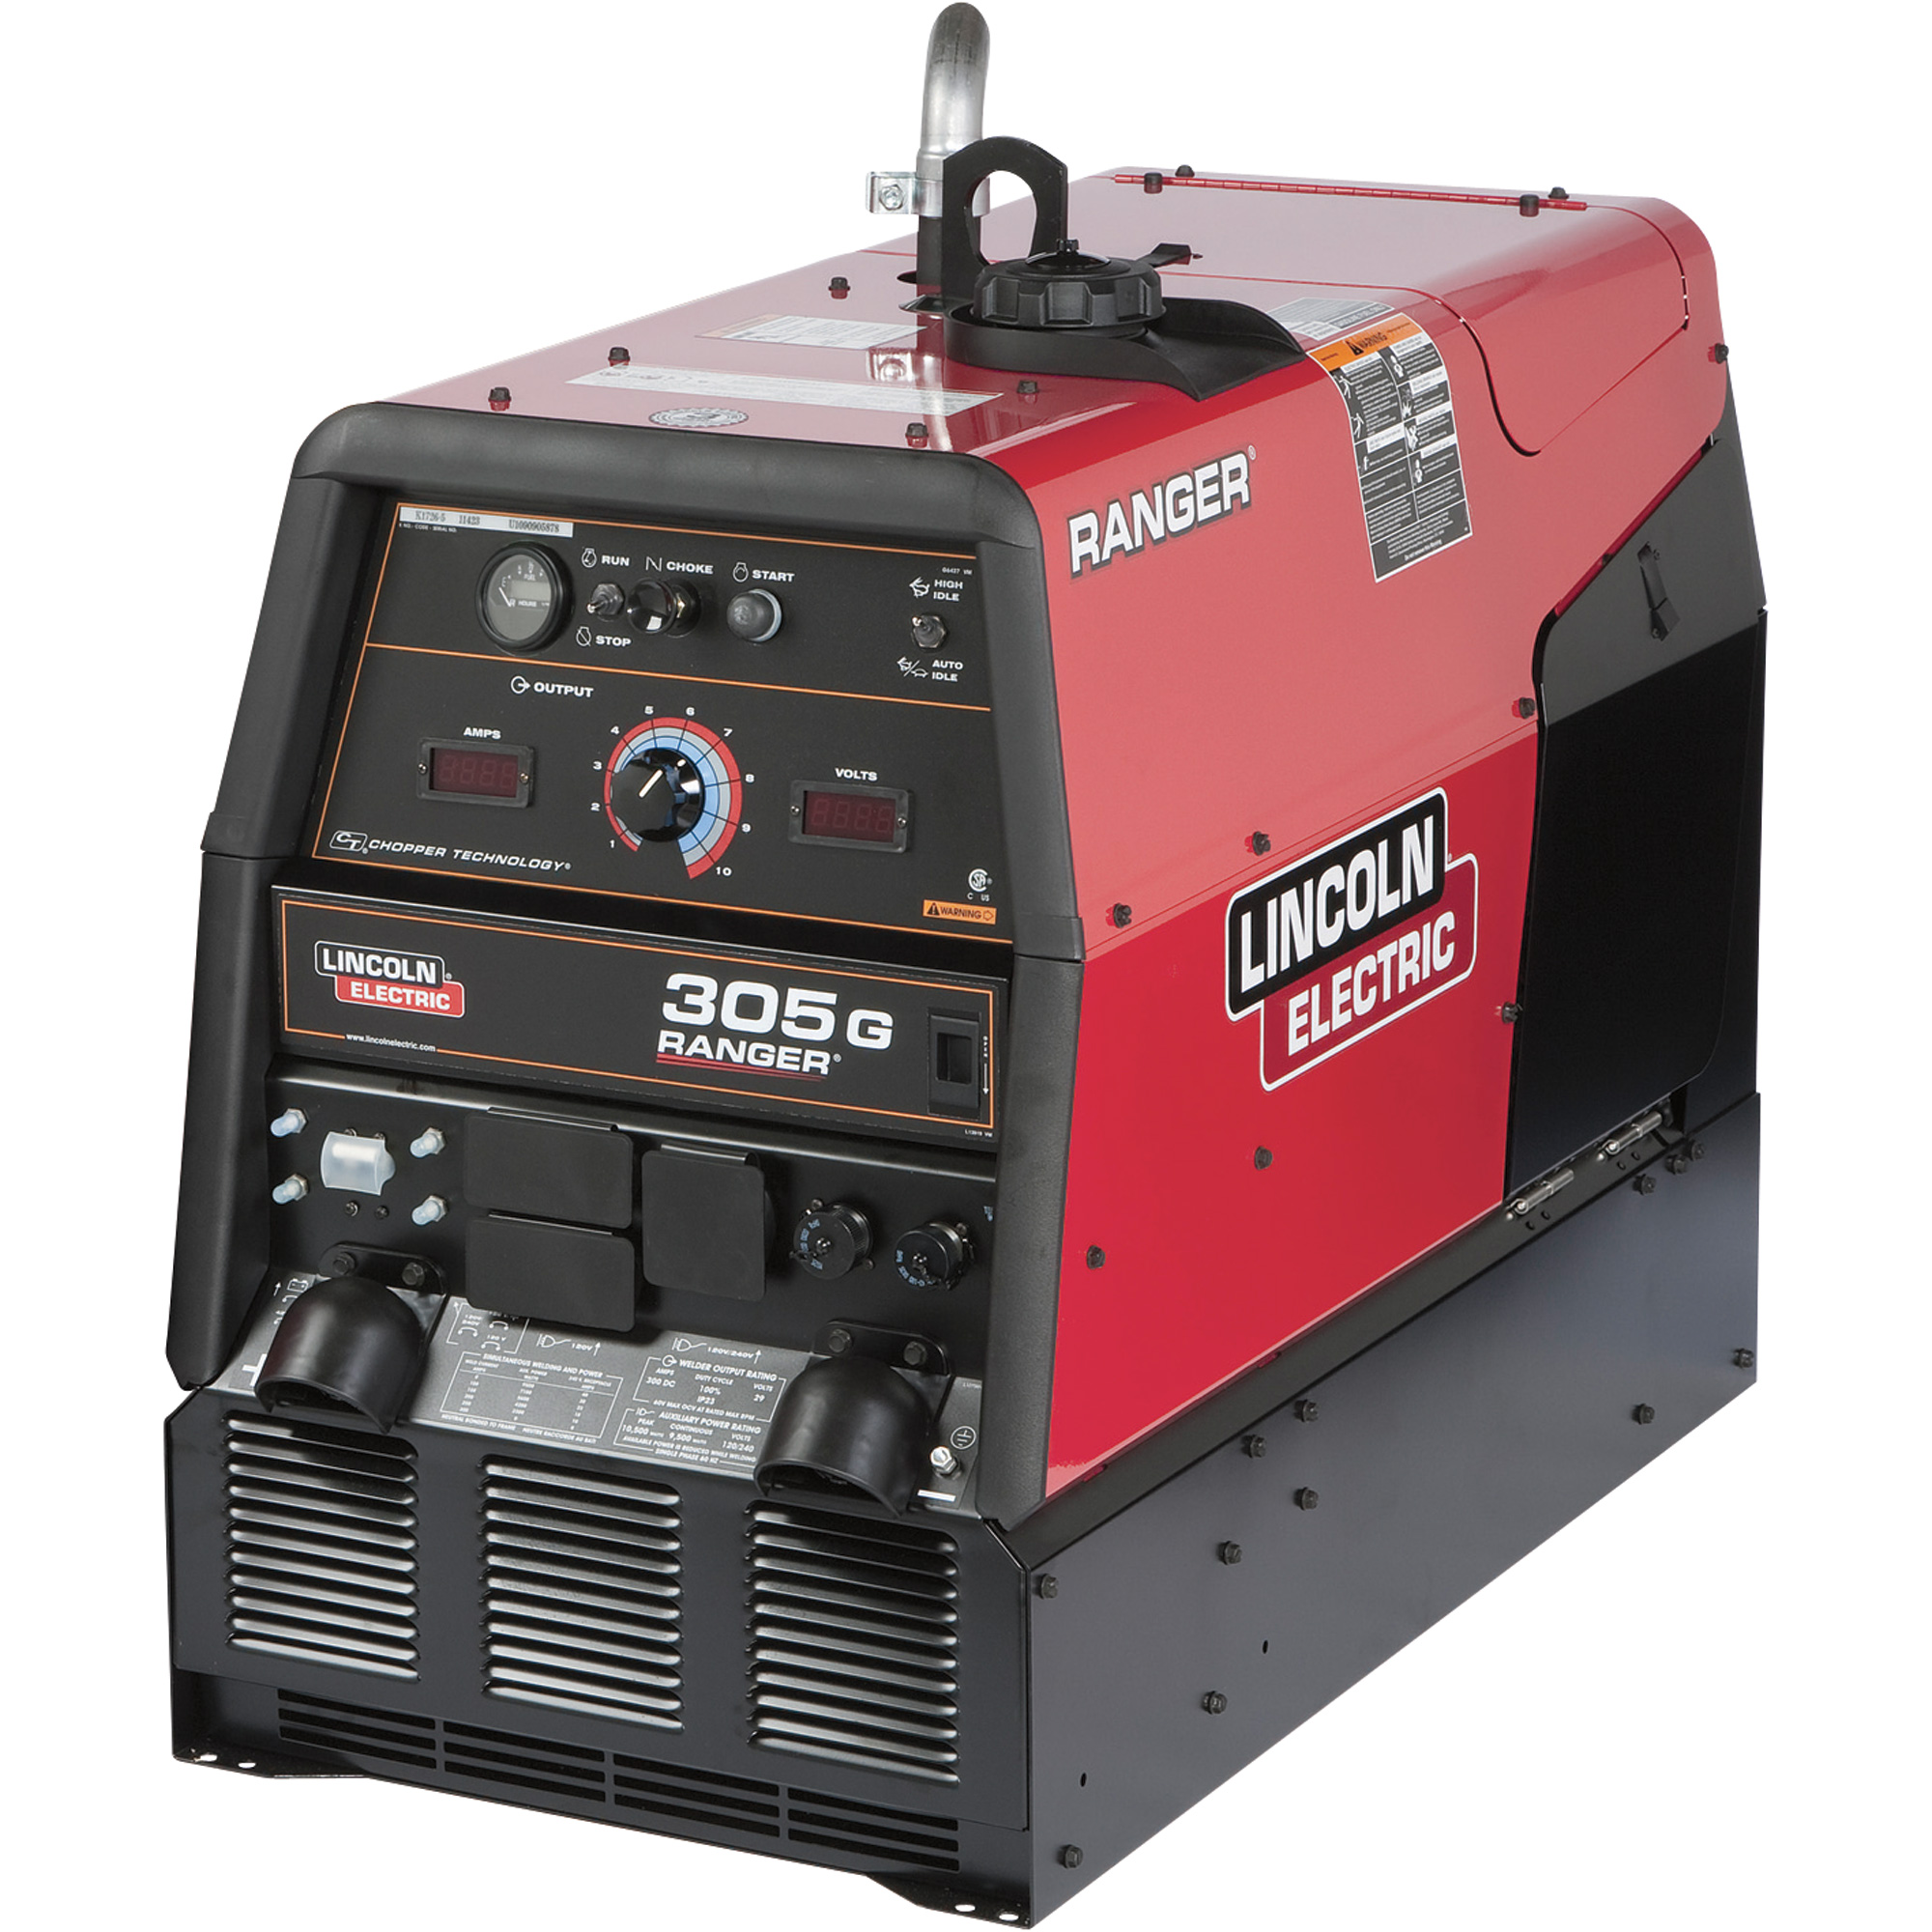 Free Shipping Lincoln Electric Ranger 305 G Welder Autos